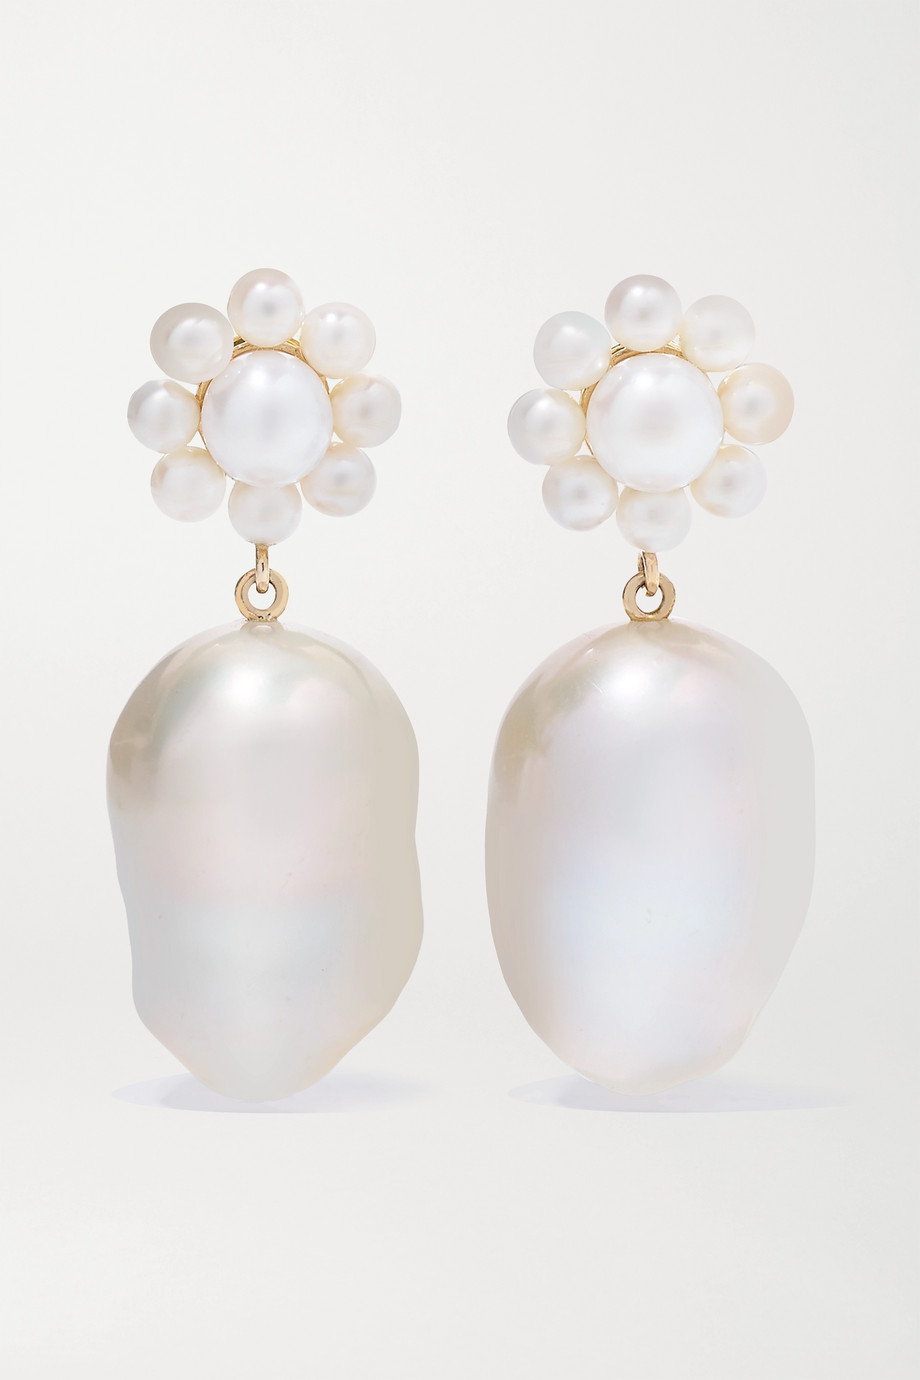 Sophie Bille Brahe Margherita Venus 14-karat gold pearl earrings